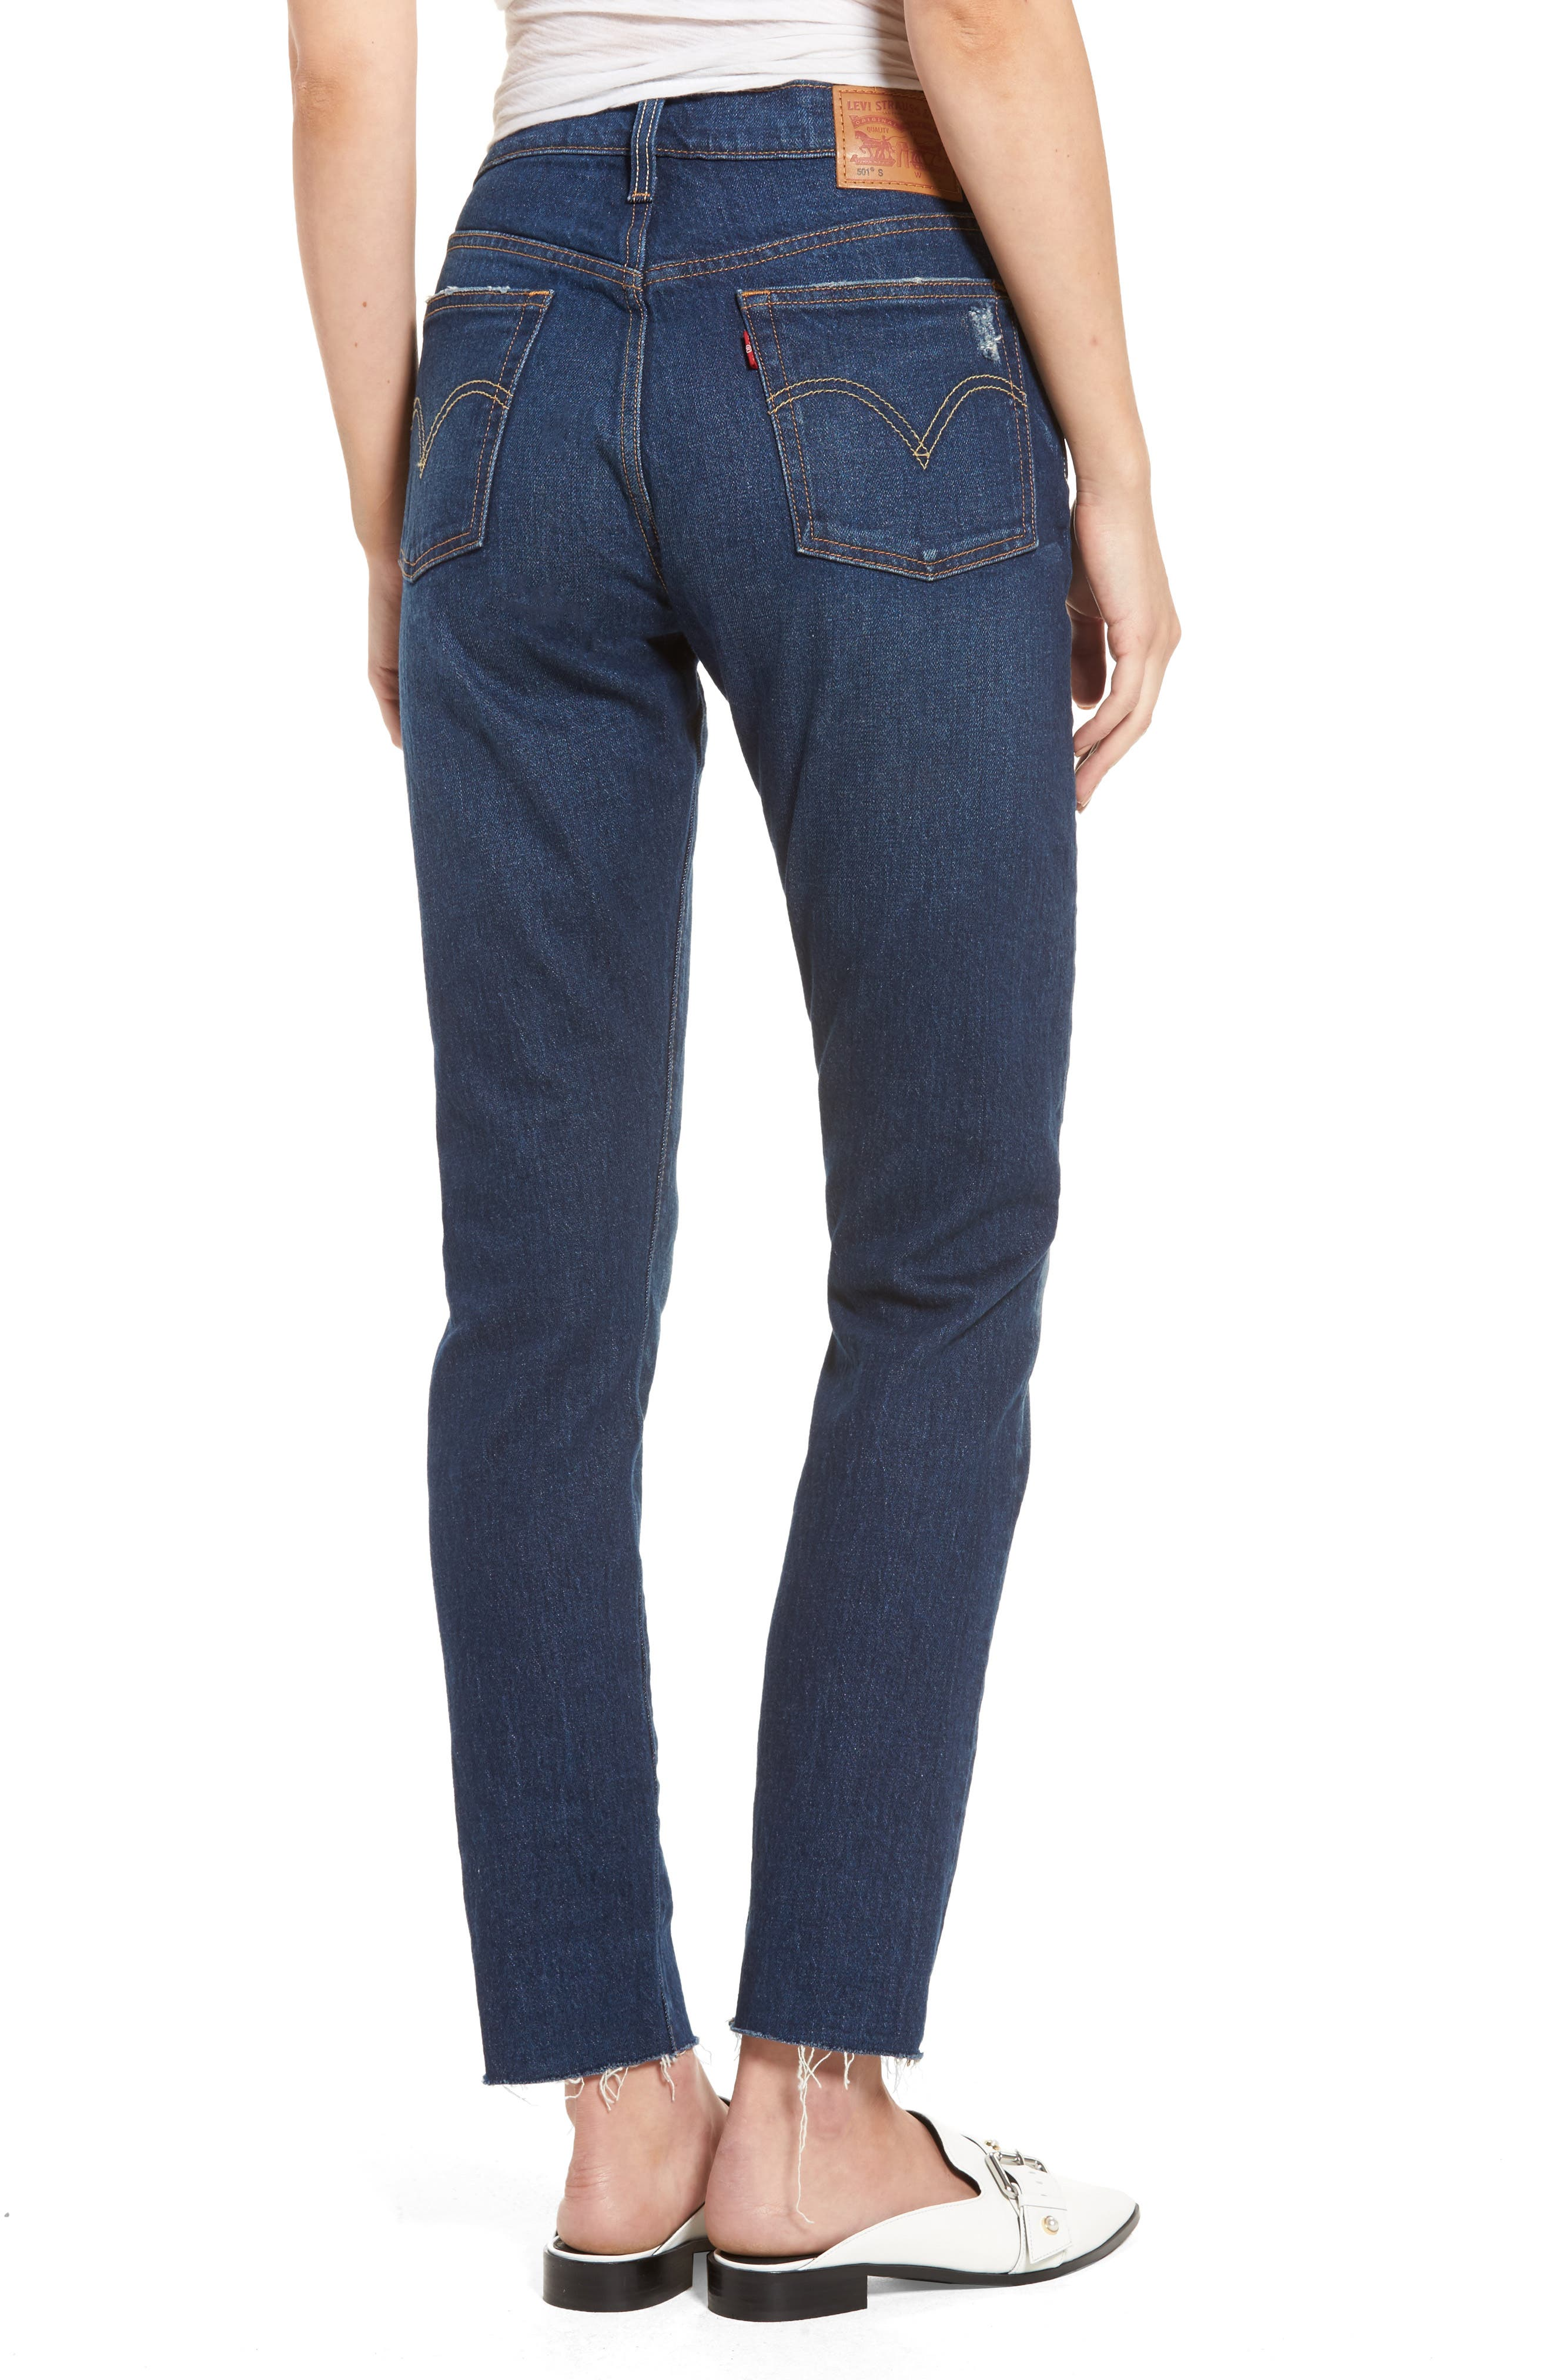 Levis<sup>®</sup> 501 Raw Hem Skinny Jeans,                             Alternate thumbnail 5, color,                             Song For Forever